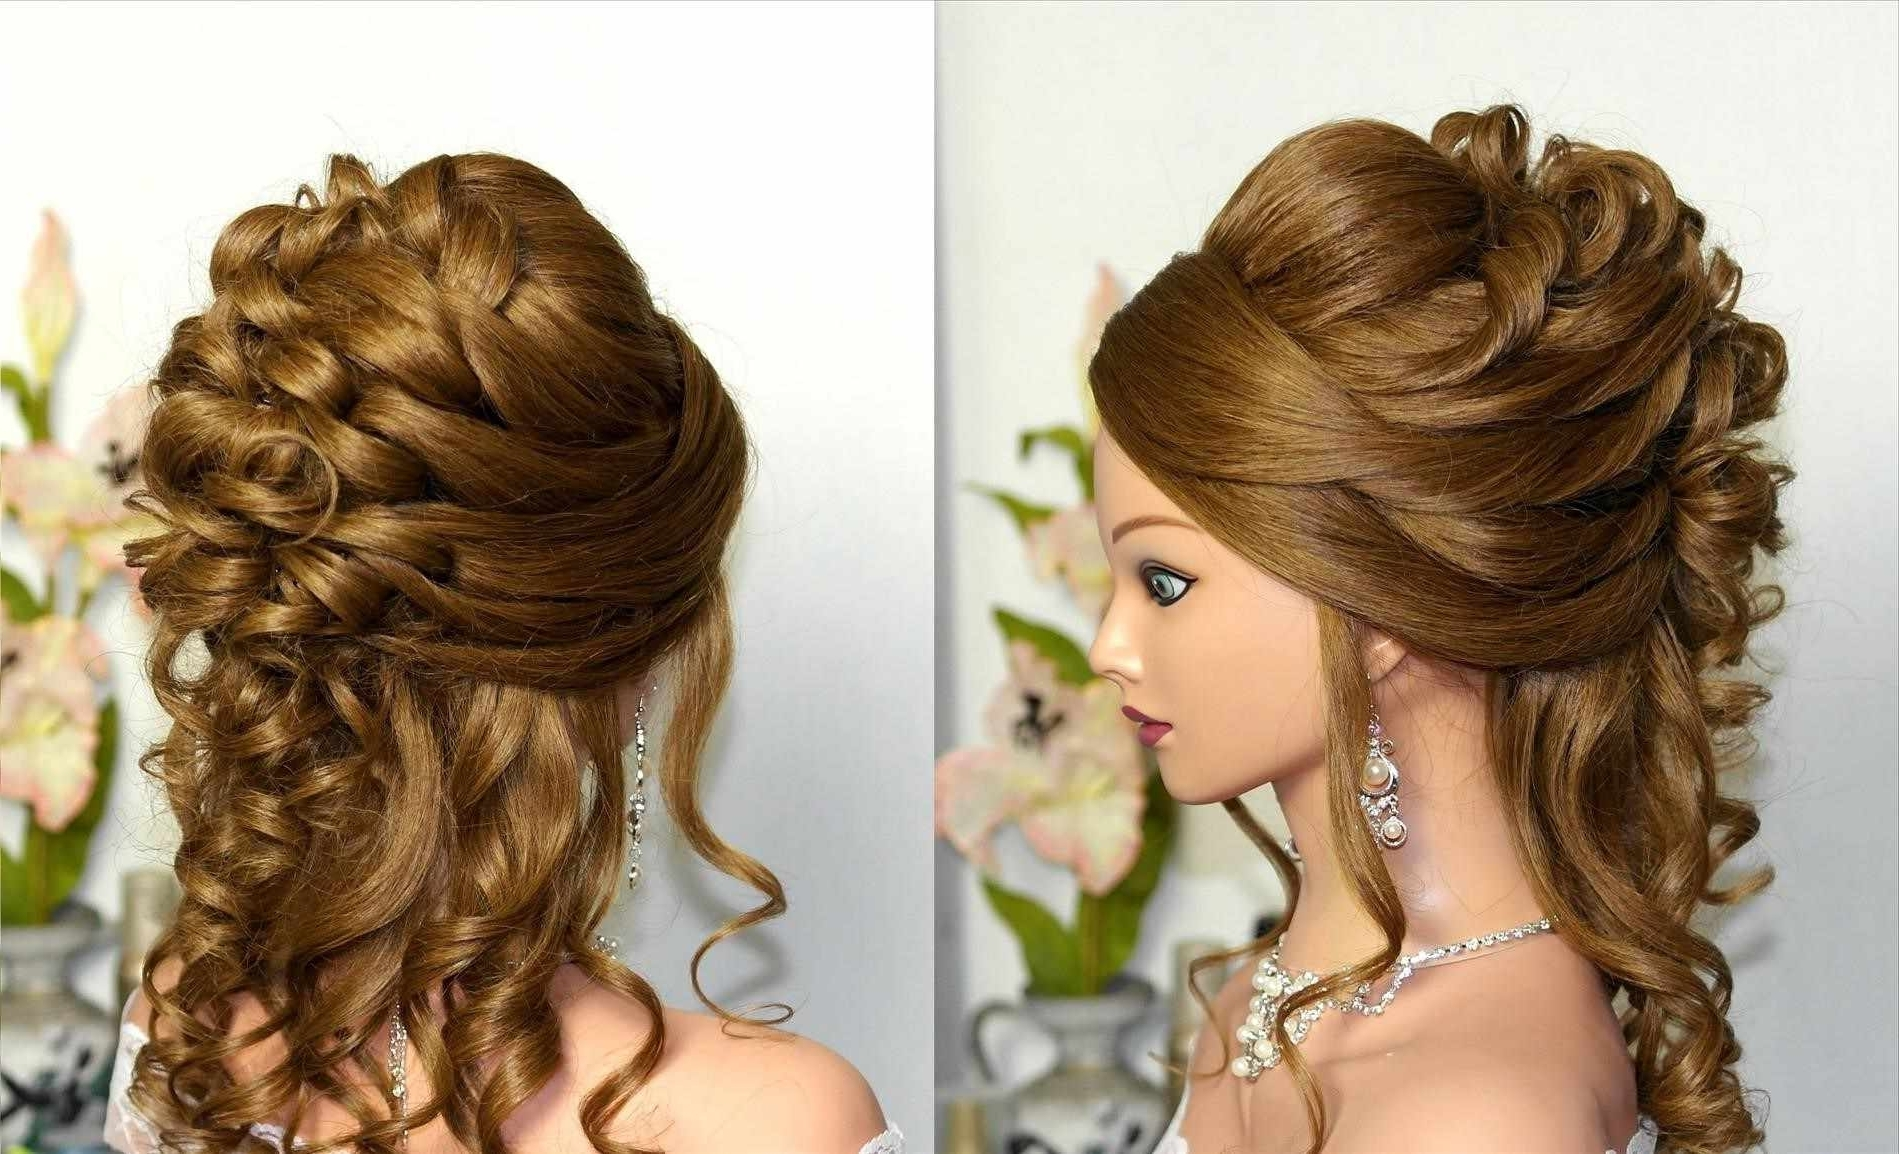 Best Wedding Hairstyles For Long Thick Hair Impressive Updos Prom In Wedding Updos For Thick Hair (View 3 of 15)